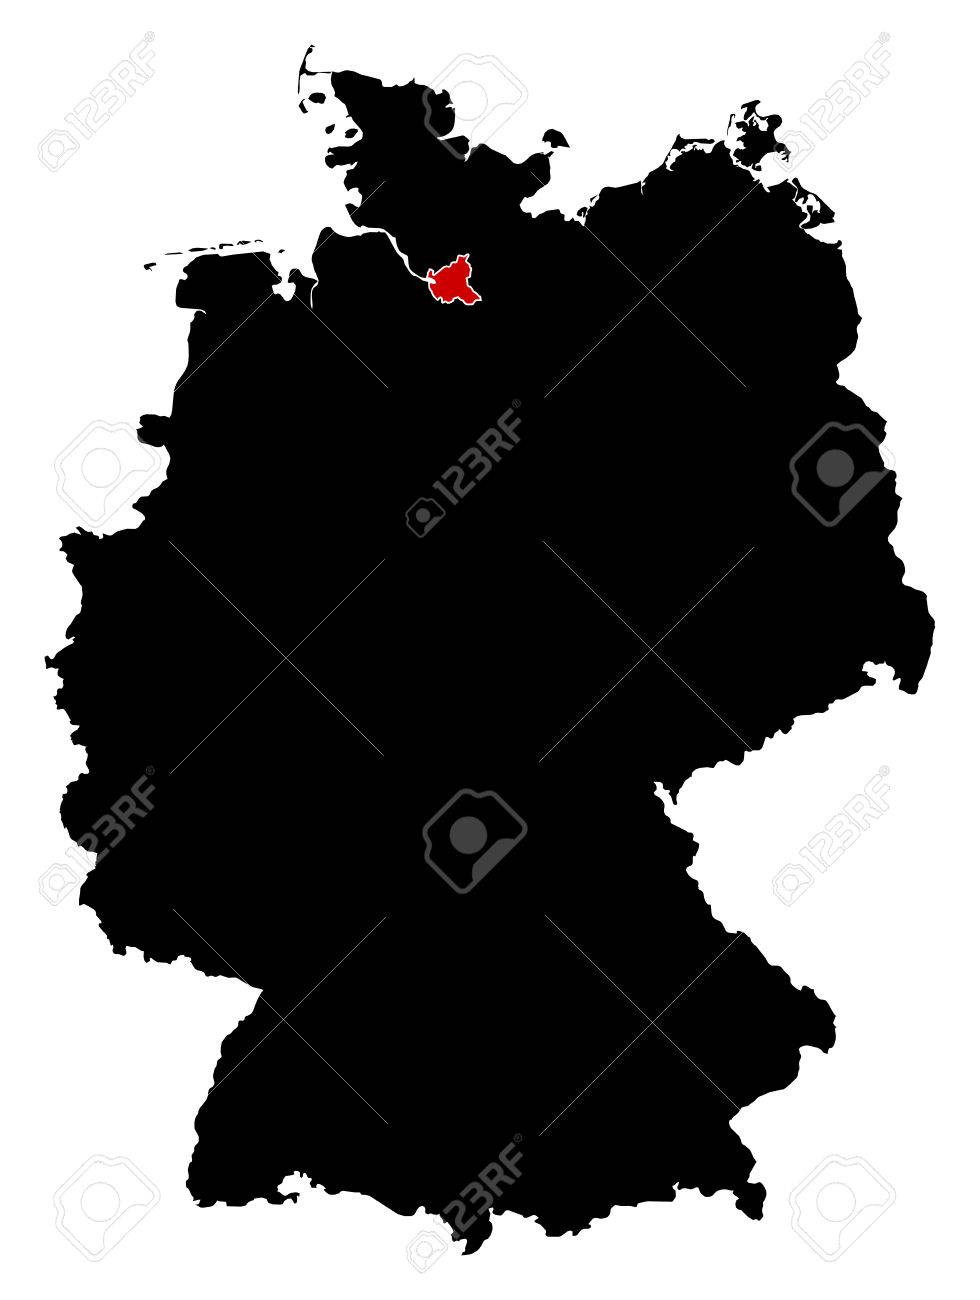 Map Of Germany Hamburg.Map Of Germany In Black Hamburg Is Highlighted In Red